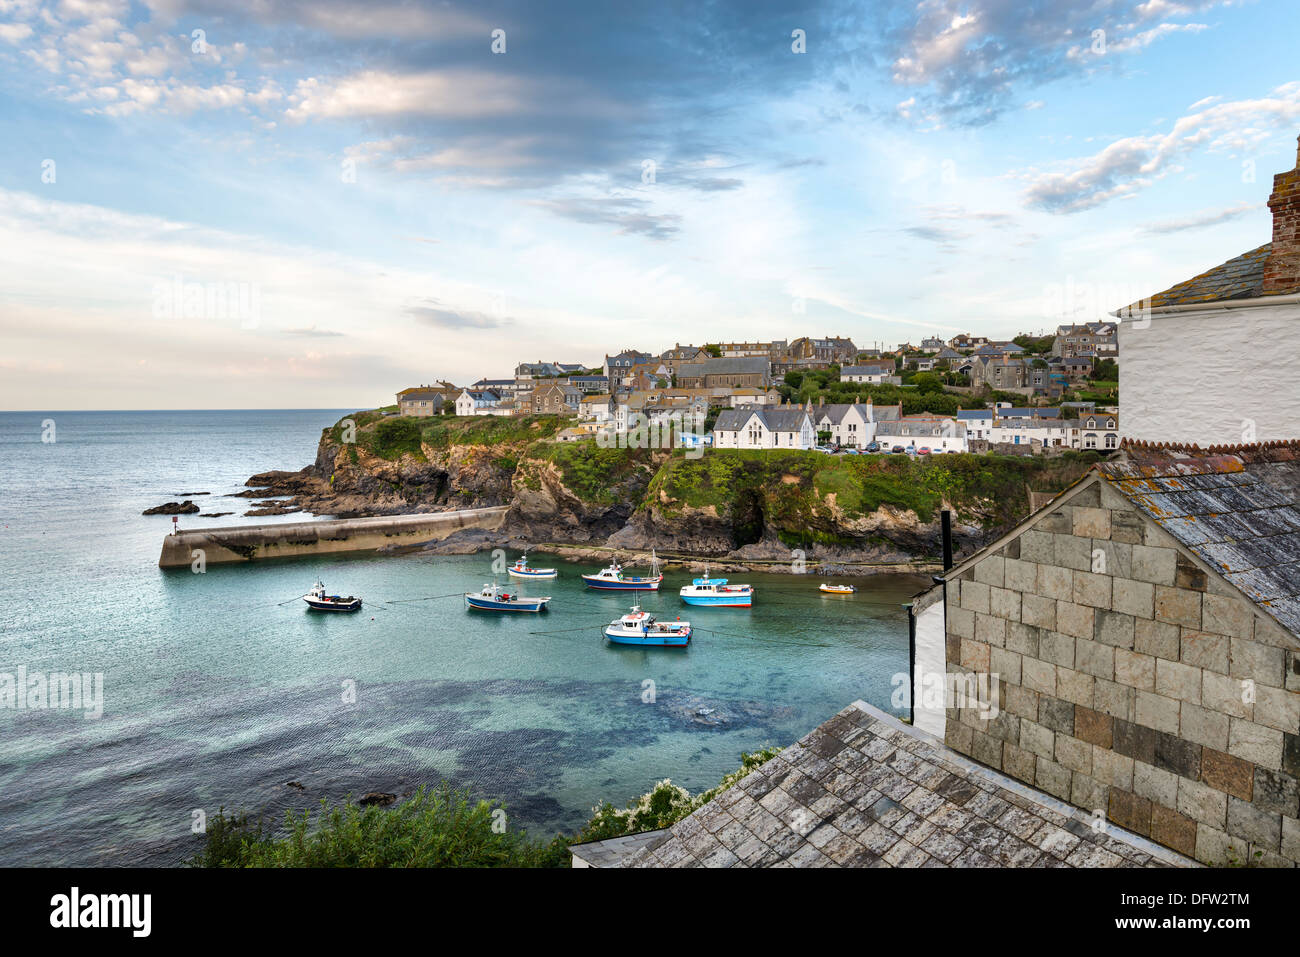 Port Isaac an historic fishing port on the north coast of Cornwall Stock Photo